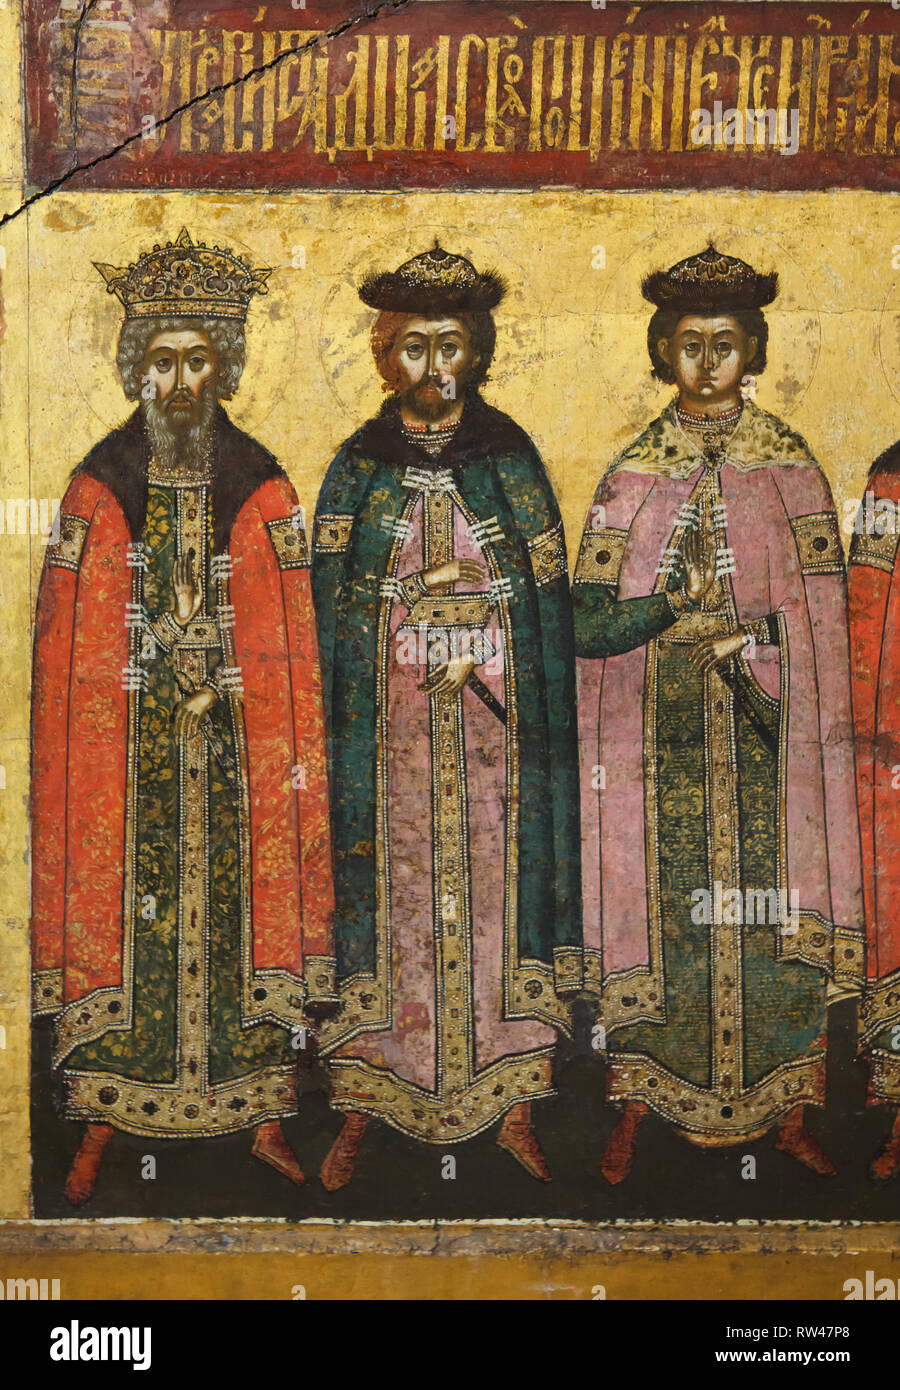 Saint Vladimir the Great with Saints Boris and Gleb (from left to right) depicted in the detail of the Russian icon of the Yaroslavl icon painting school dated from the 1640s from the Dormition Cathedral in Yaroslavl, now on display in the Yaroslavl Museum Preserve in Yaroslavl, Russia. - Stock Image